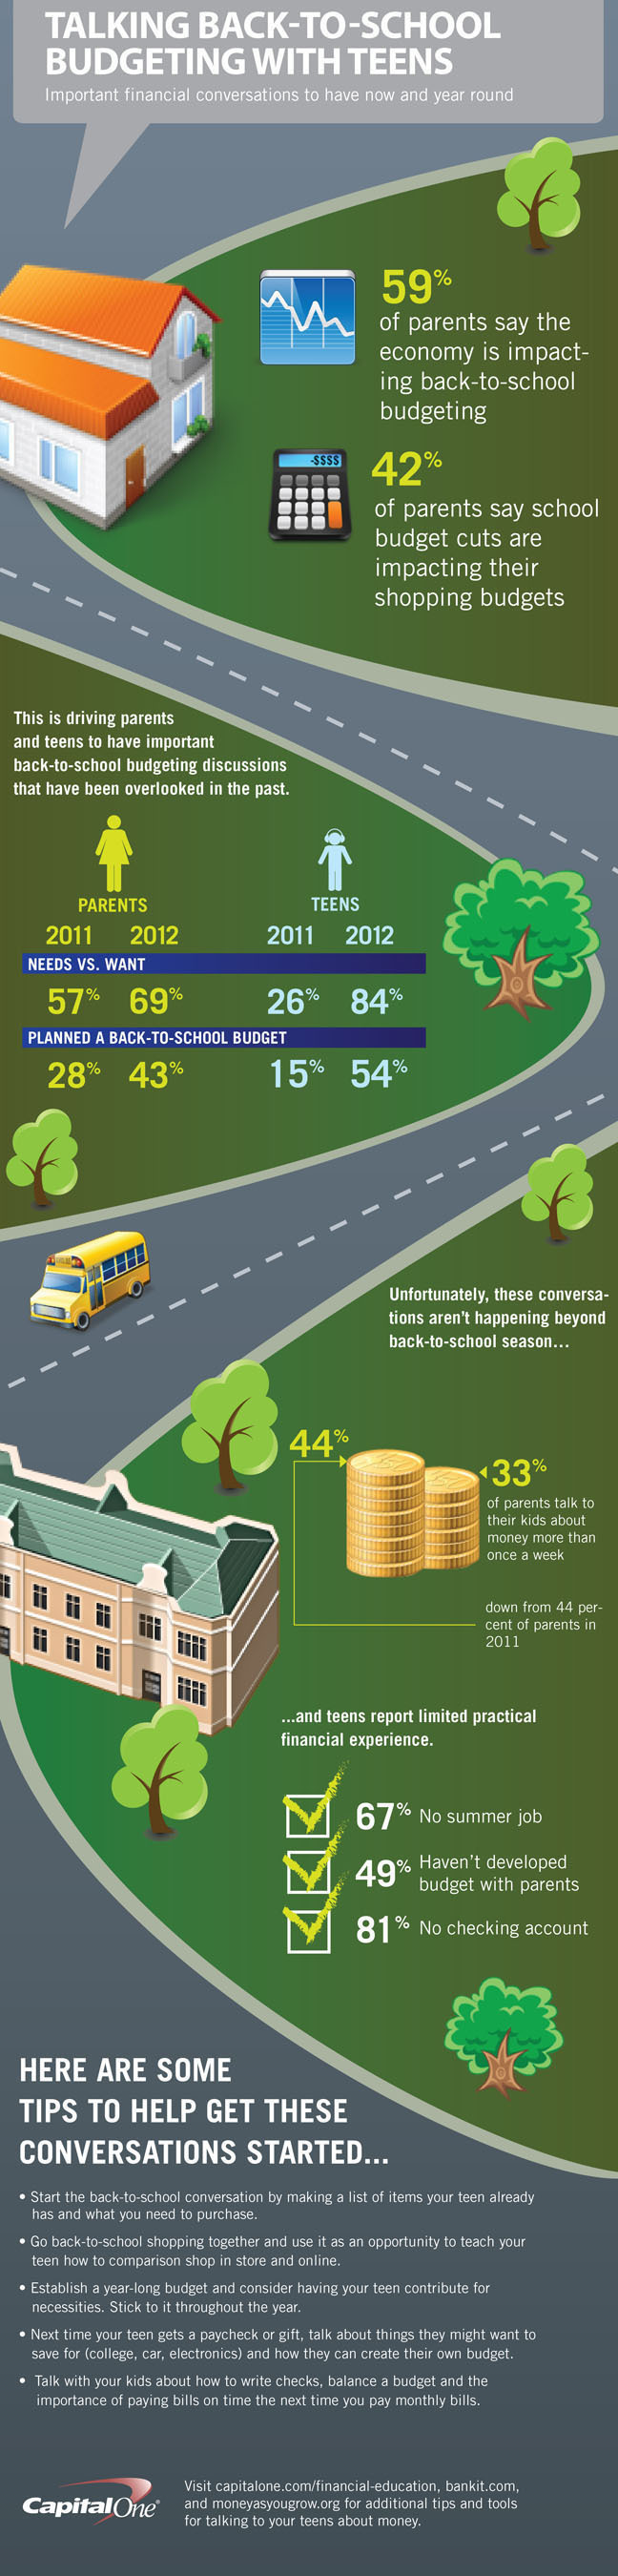 Capital One's Annual Back-to-School Shopping Survey Finds Current Economic Environment, School